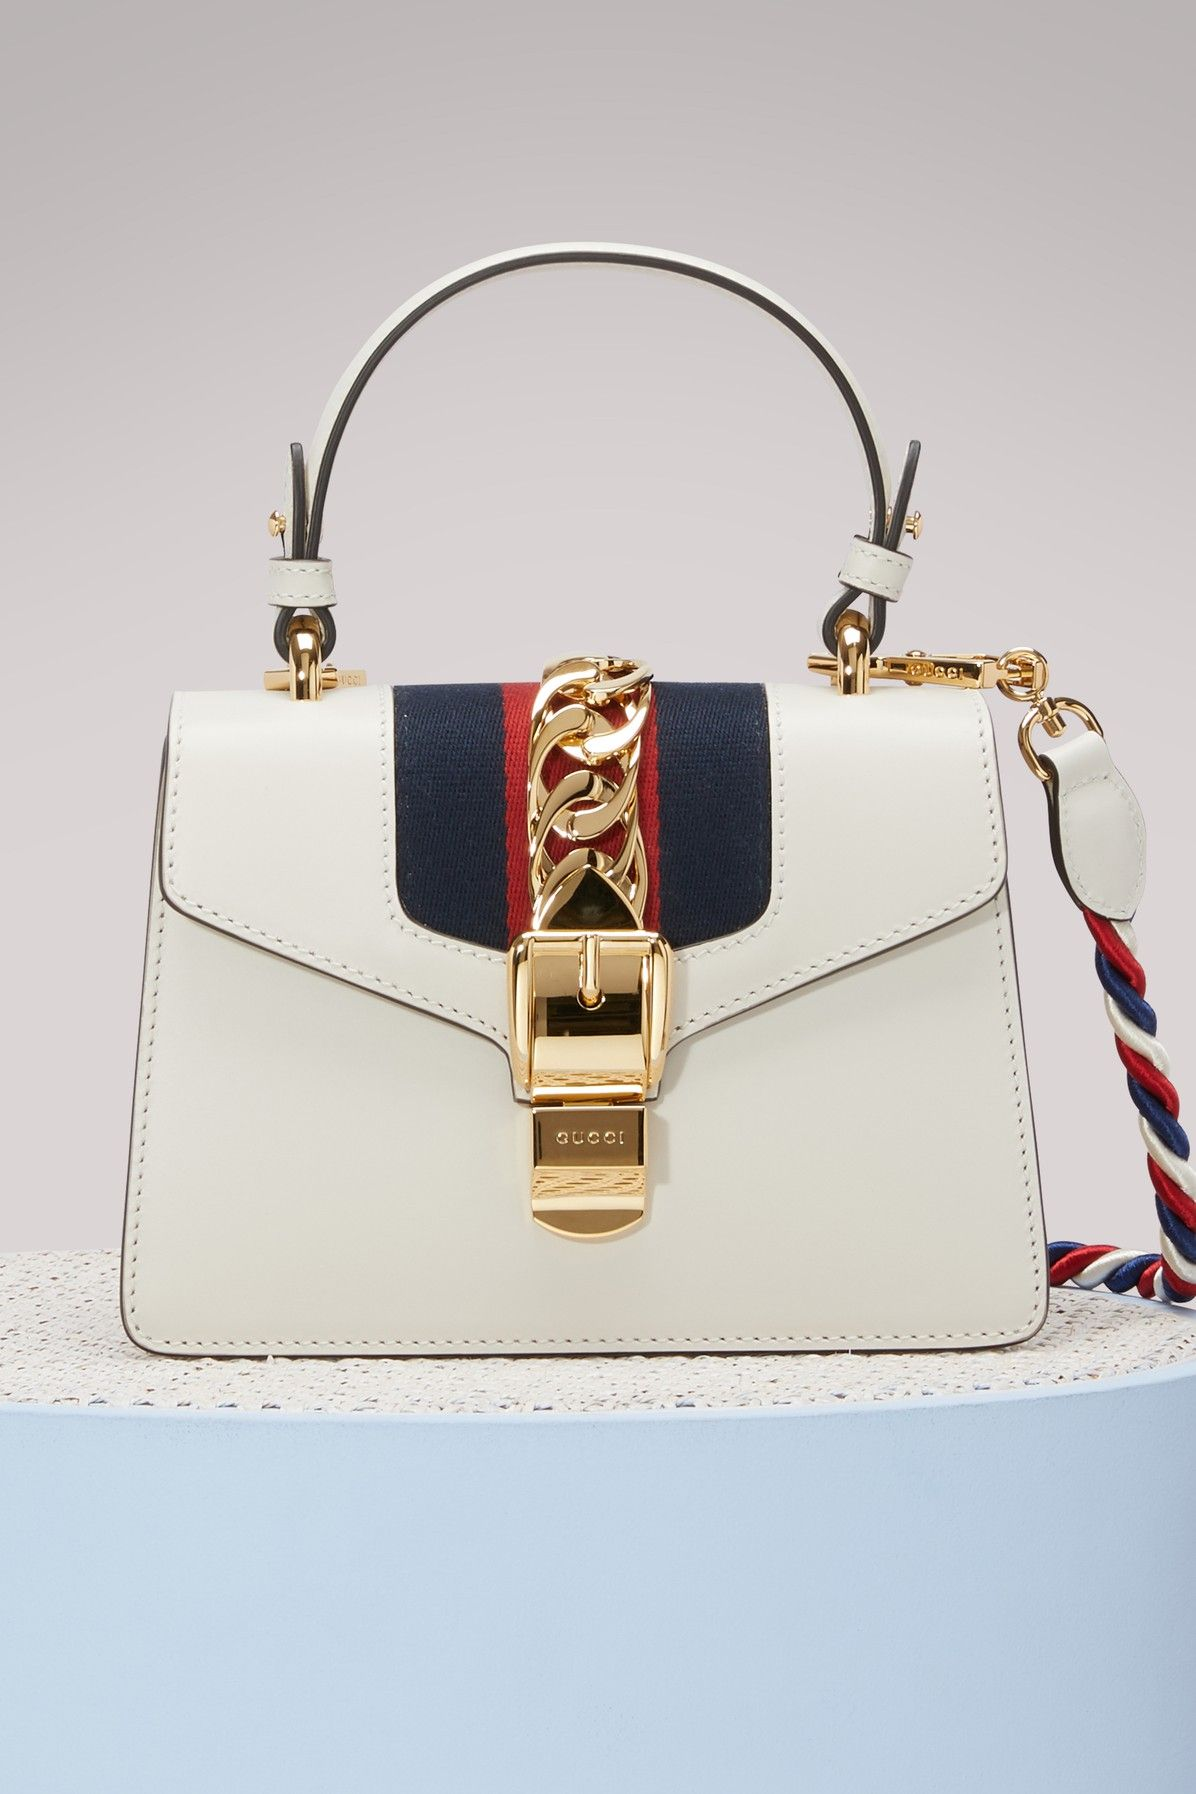 4e23b8826b52 GUCCI SYLVIE LEATHER MINI BAG. #gucci #bags #shoulder bags #hand bags # leather #